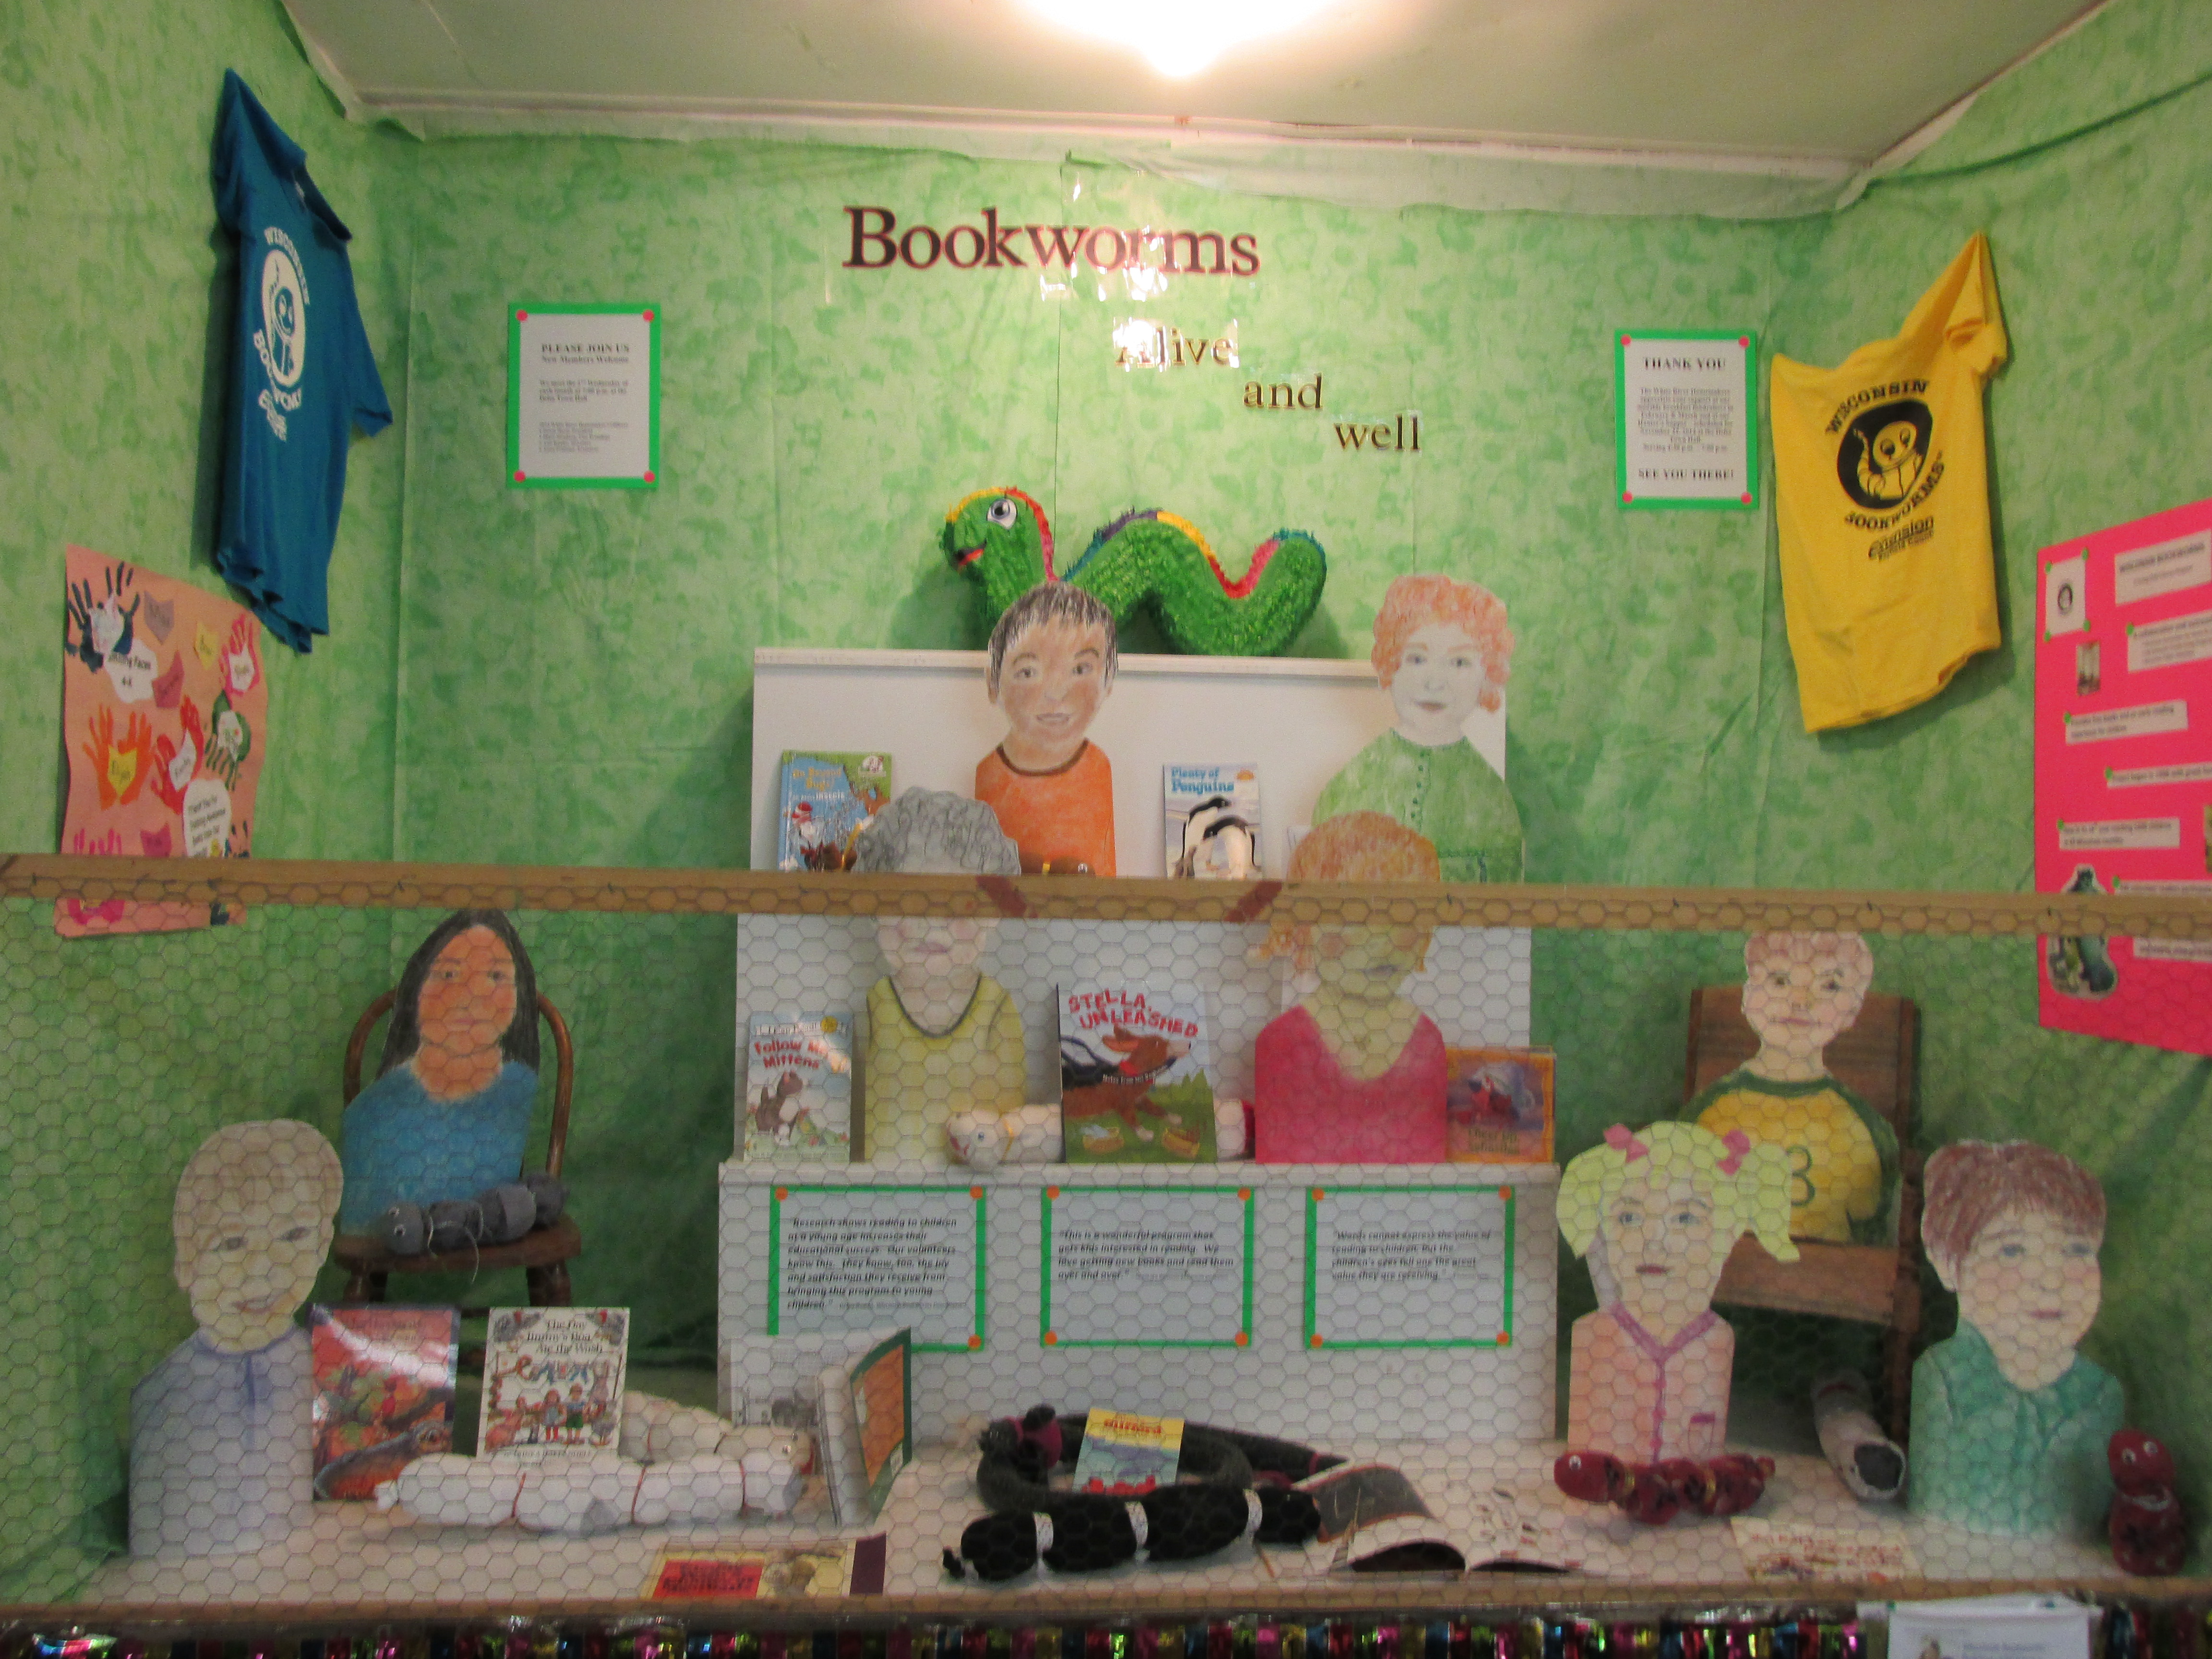 Bookworms booth